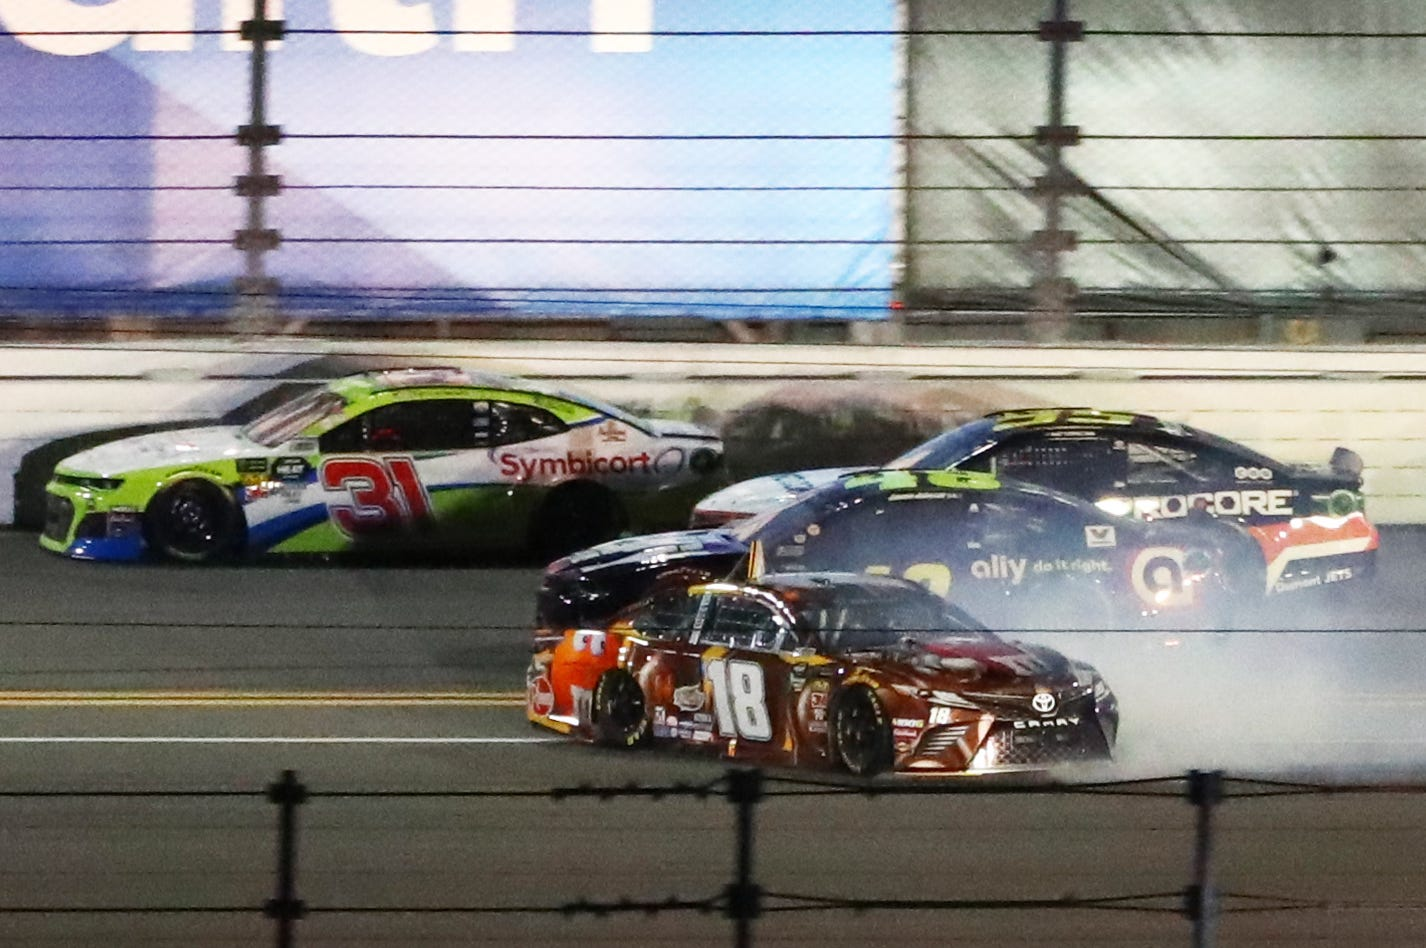 Kyle Busch (18) spins after contact with Jimmie Johnson (48) during the Gander RV Duel 1 at Daytona International Speedway.